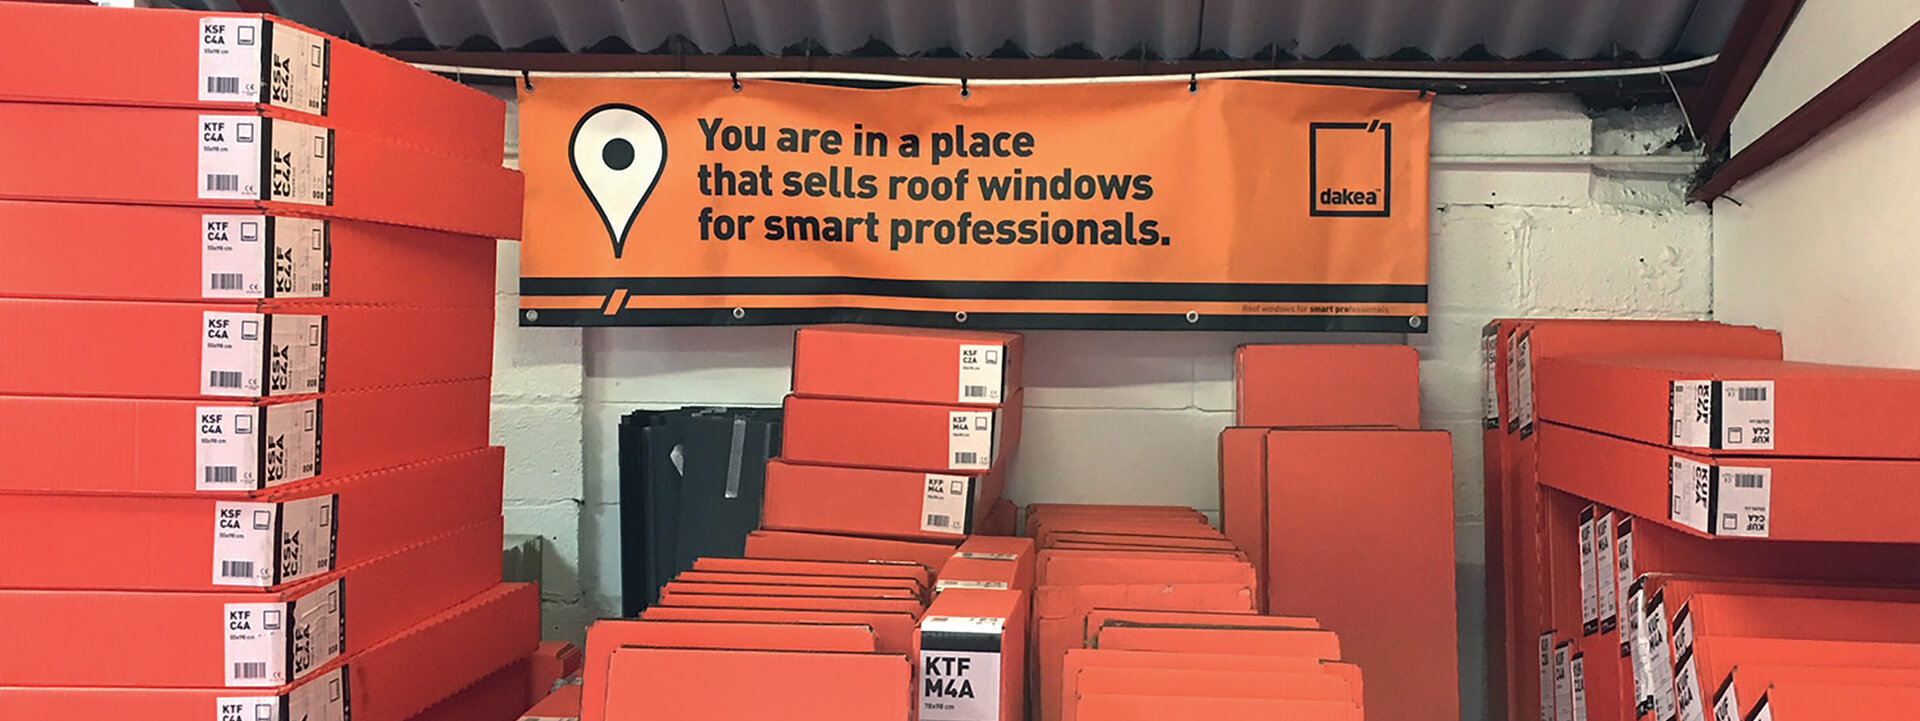 Selling roof windows for smart professionals